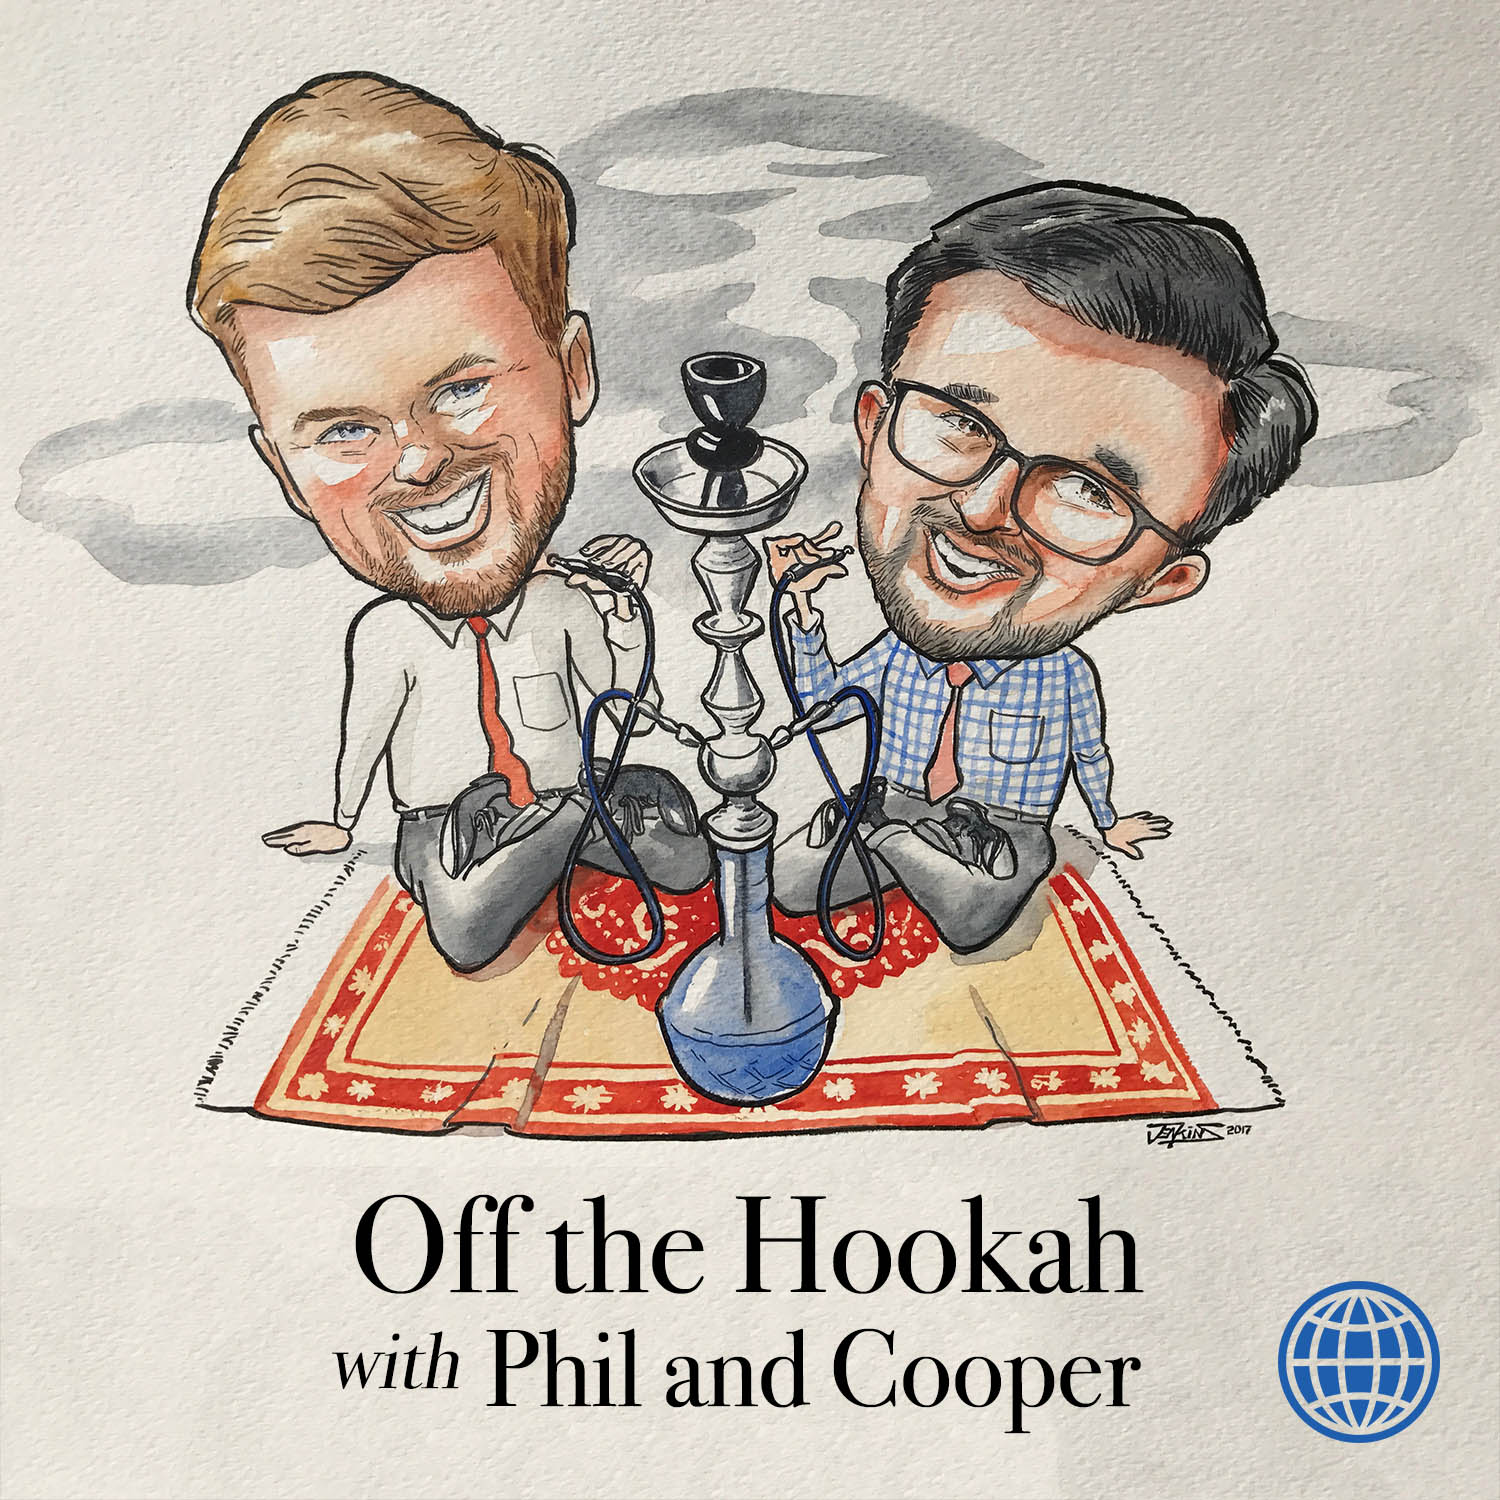 Off the Hookah with Phil and Cooper logo